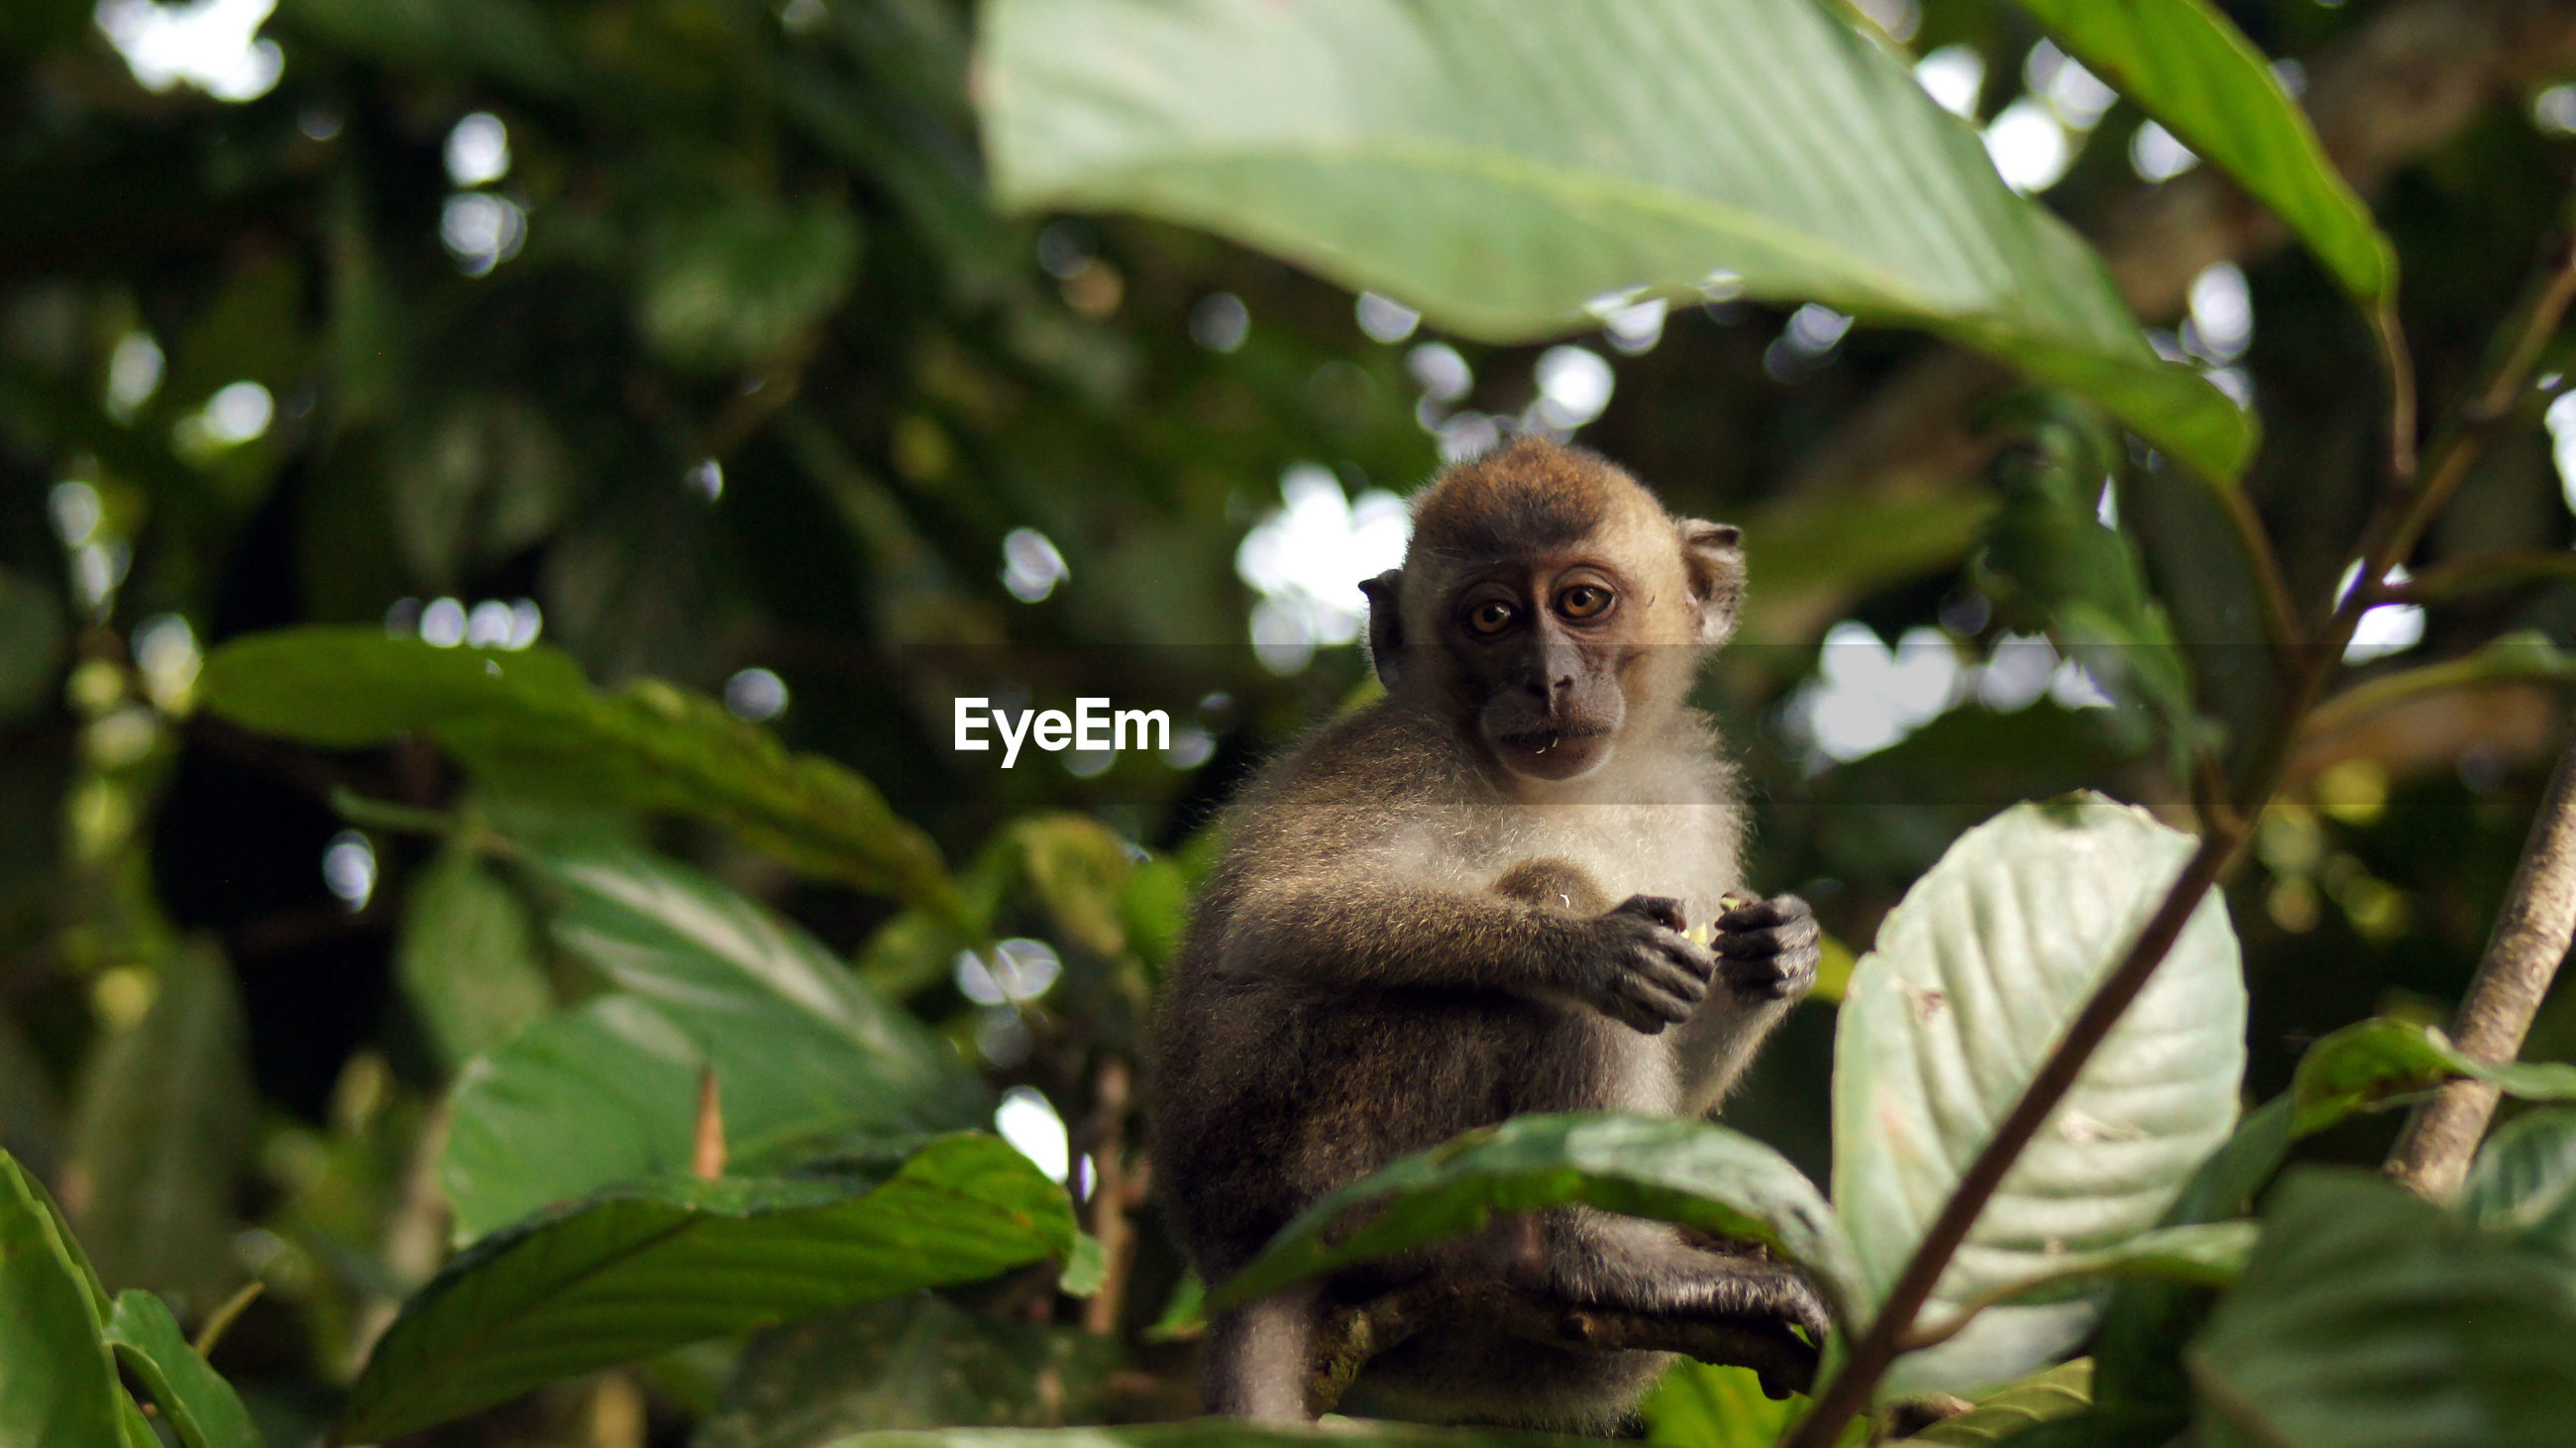 LOW ANGLE VIEW OF MONKEY SITTING ON PLANT